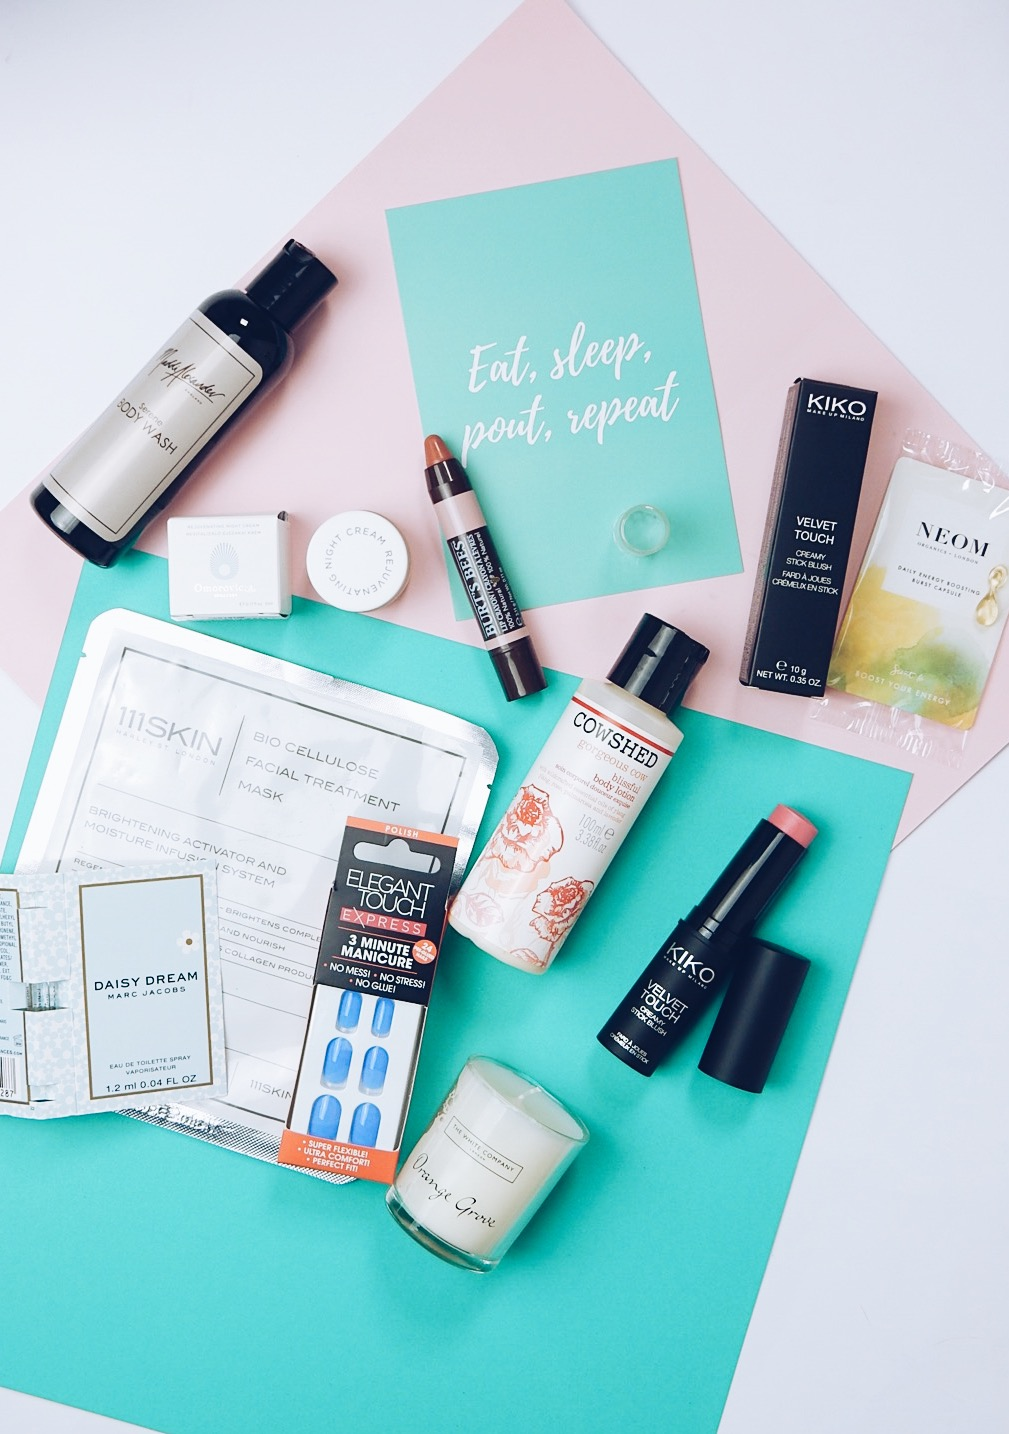 Building Your Own Beauty Box With Latest In Beauty